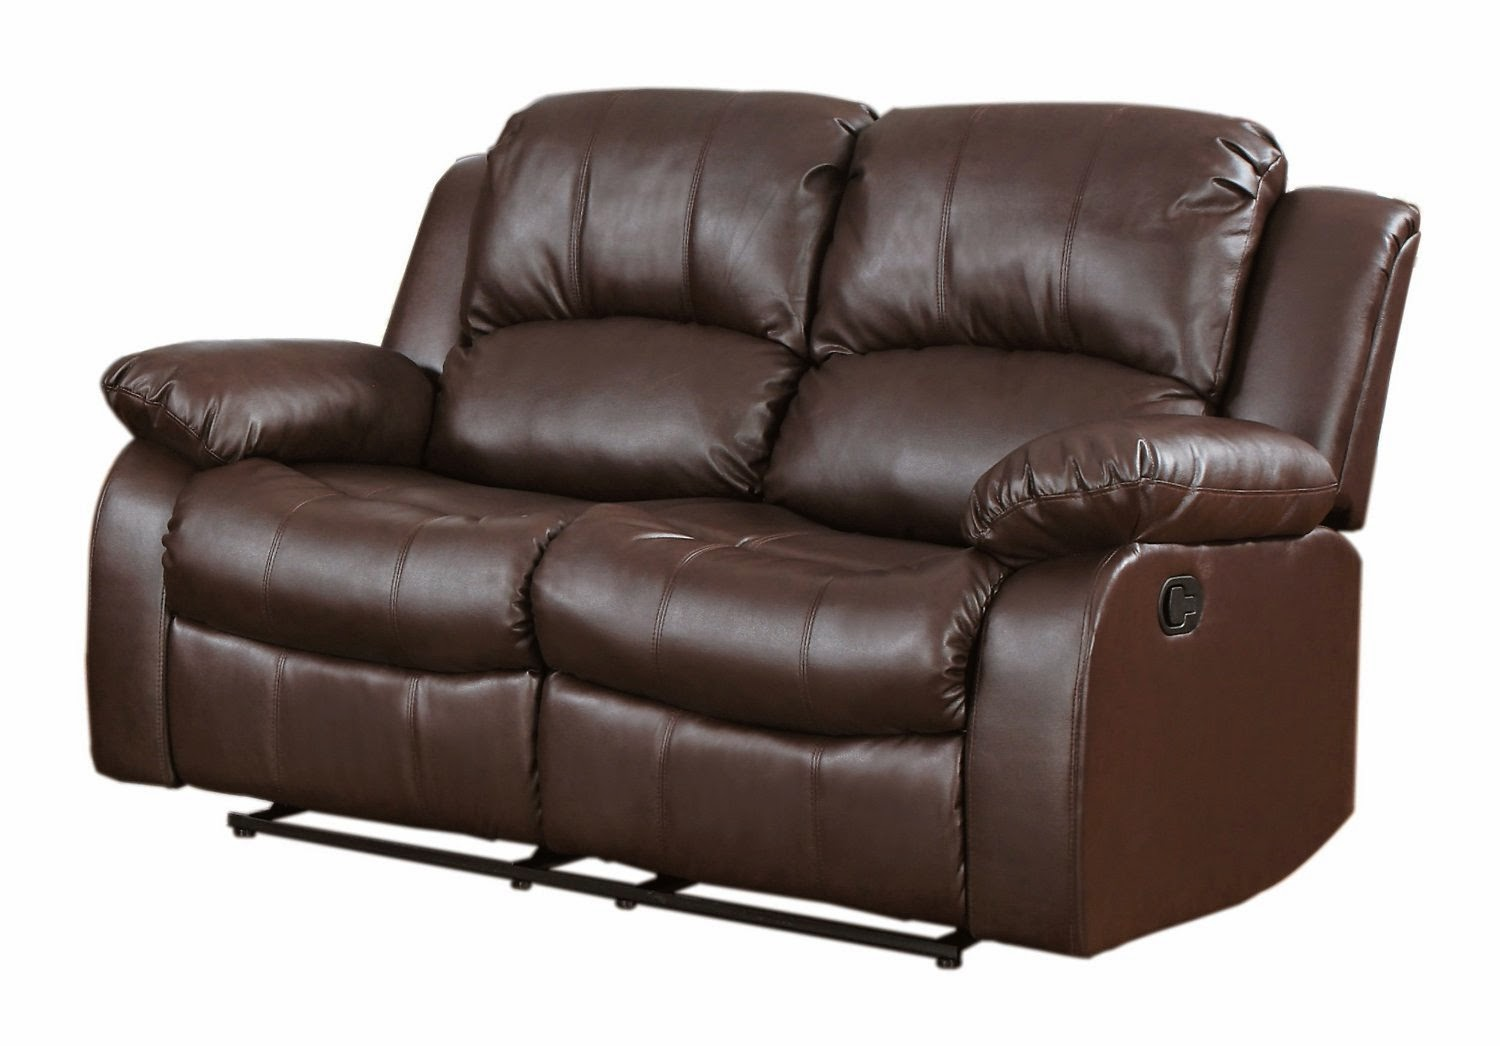 cheap reclining sofa and loveseat reveiws best leather reclining rh recliningsofaandloveseat blogspot com